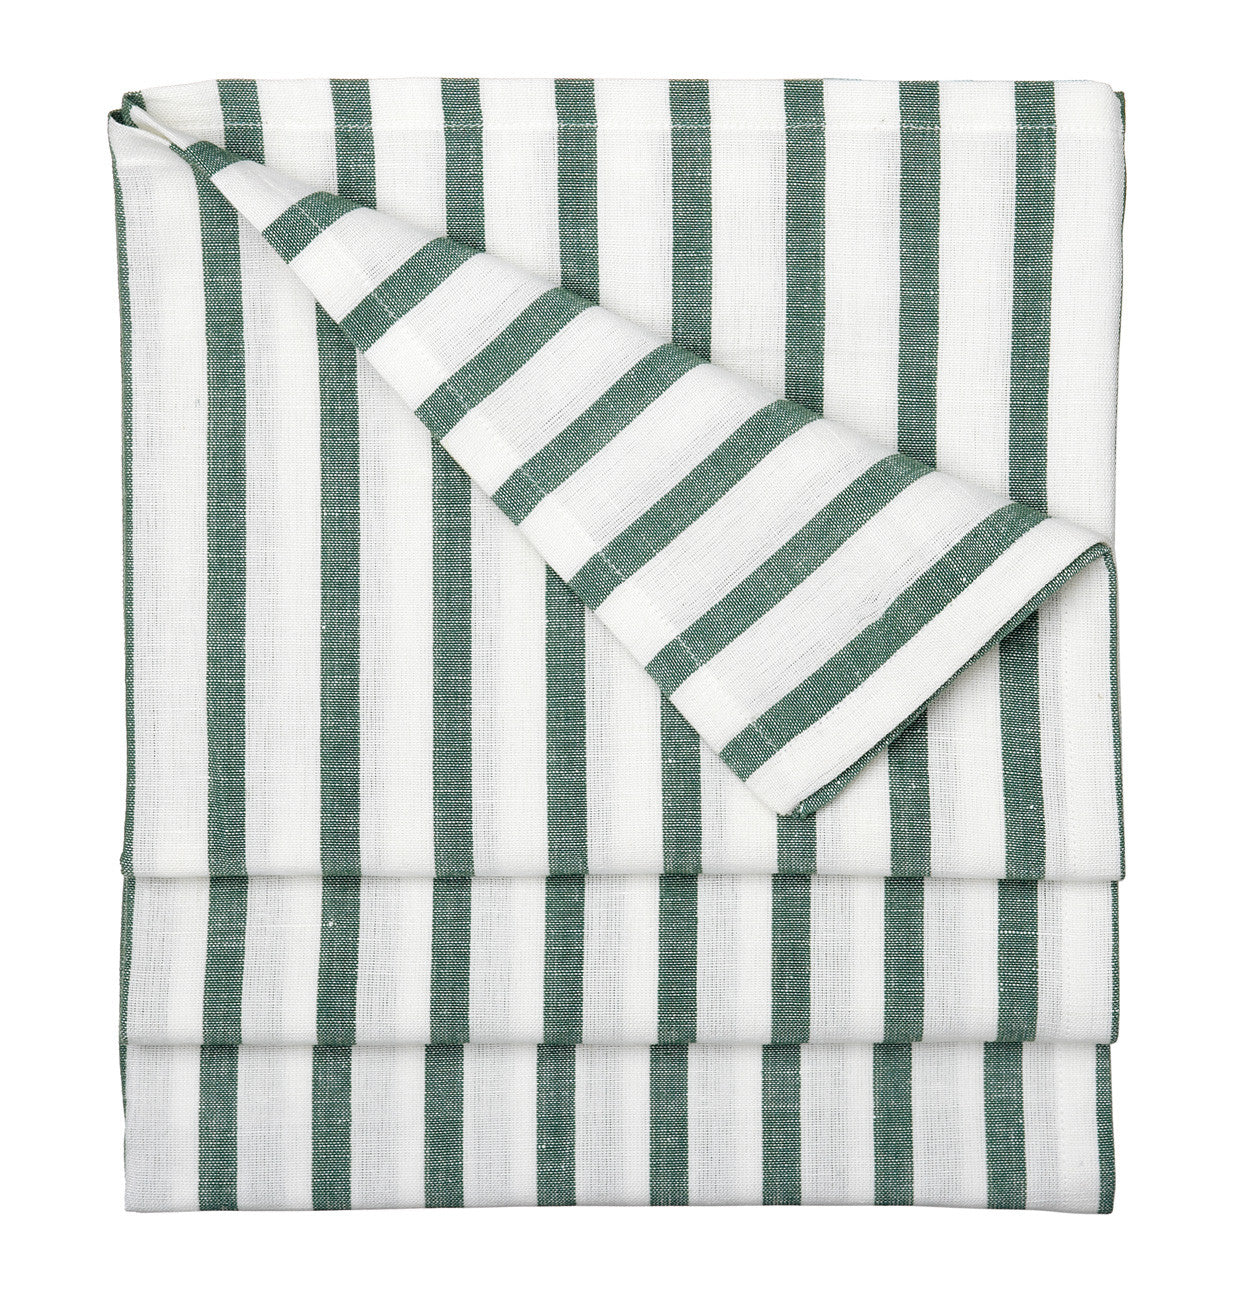 Autumn Ticking Stripe Cotton Linen Tablecloth in Dark Moss Green Canada USA